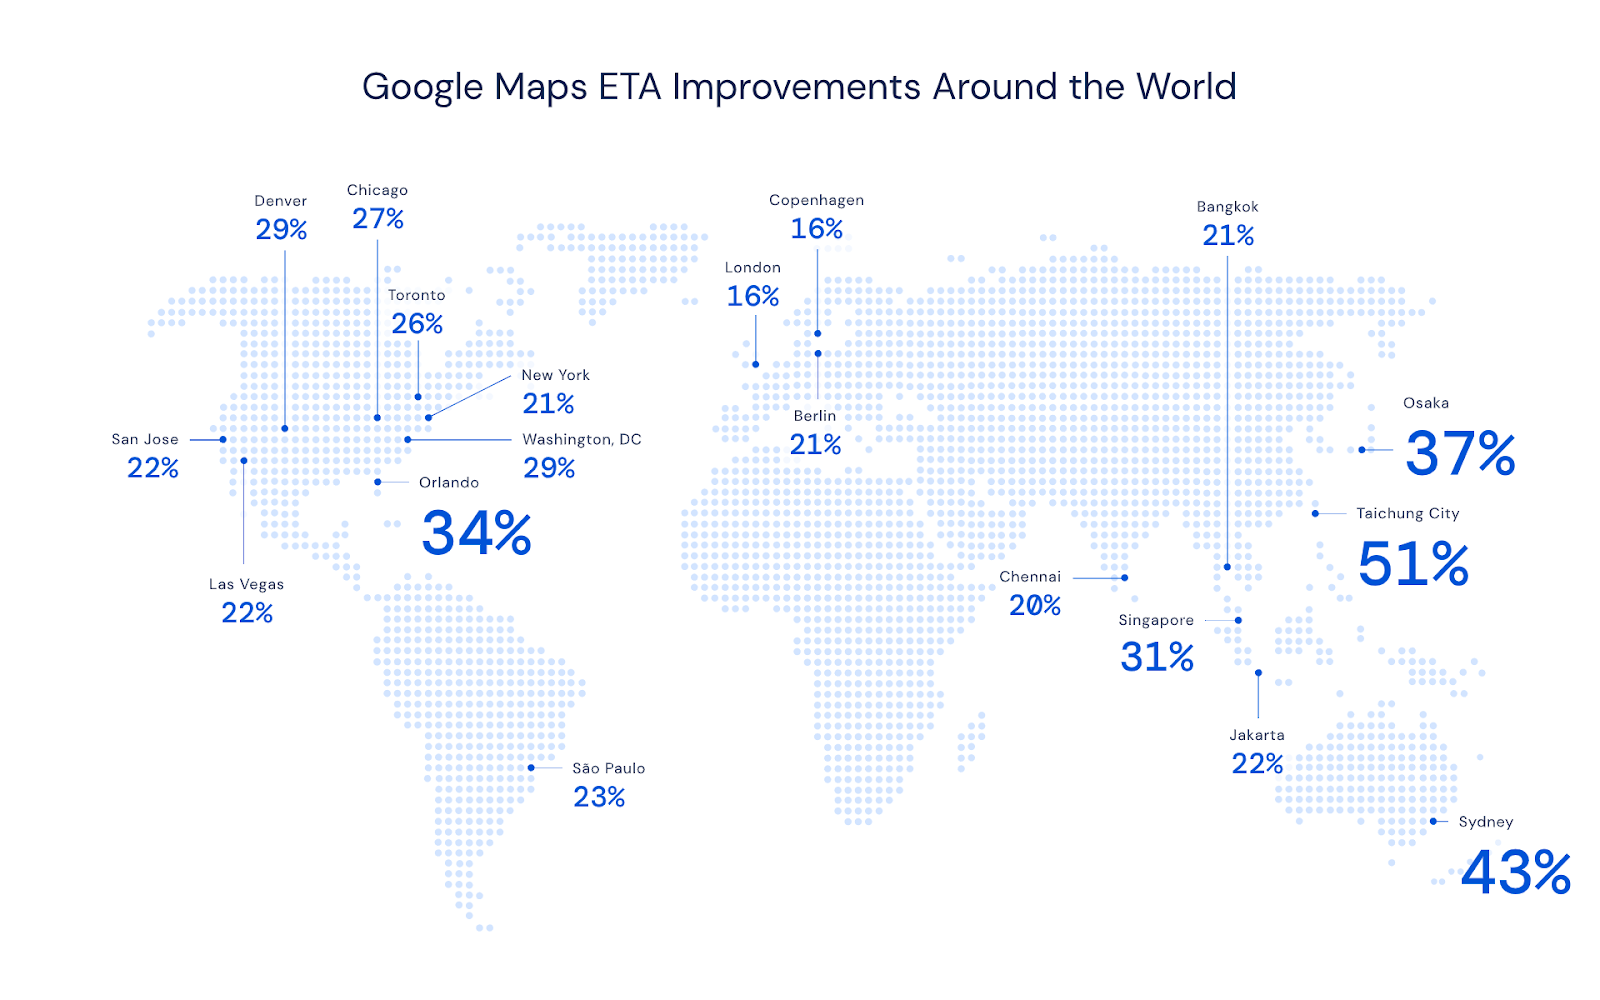 Google reportedly working on 'COVID-19 Info' overlay in Google Maps